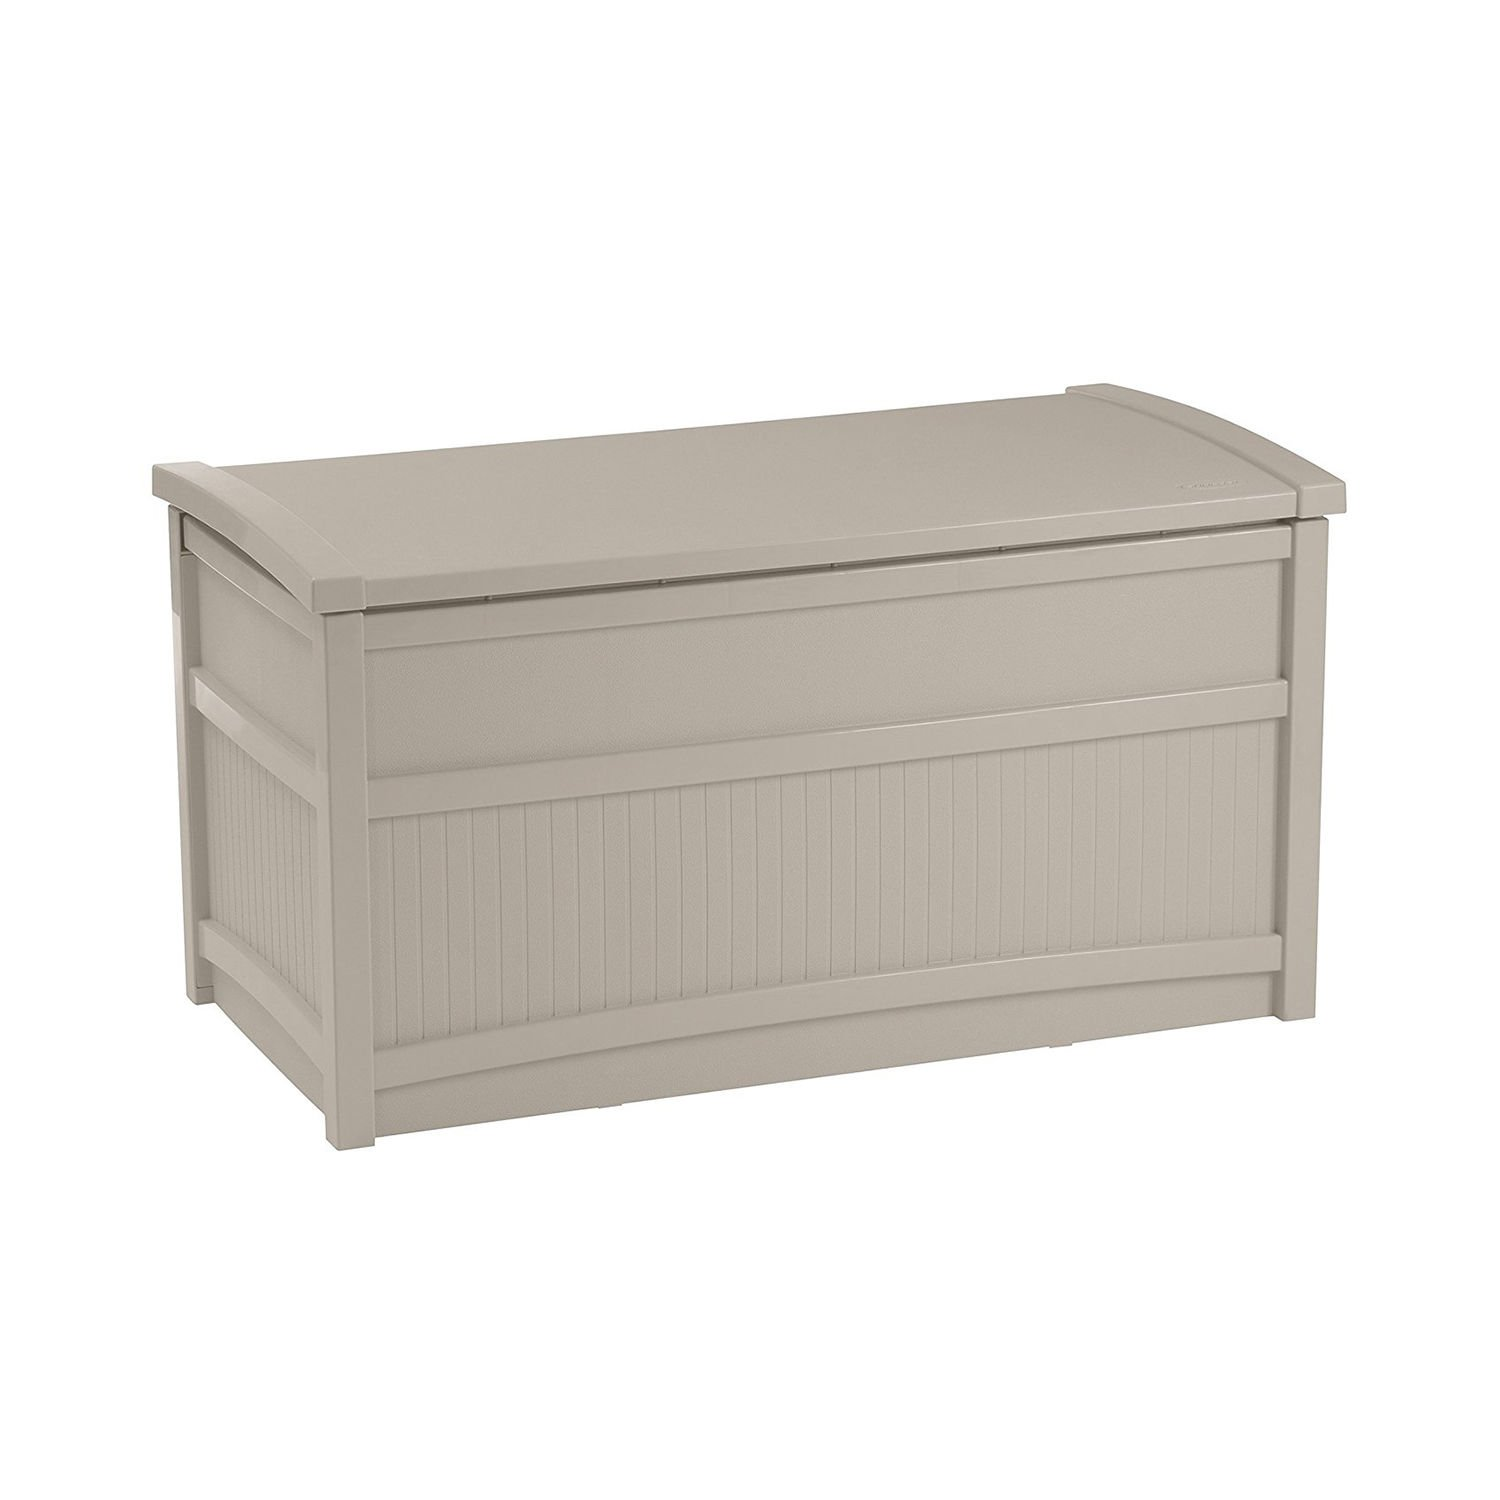 50 Gallon Stay Dry Resin Outdoor Deck Storage Box with Seat, Light Taupe With Ebook